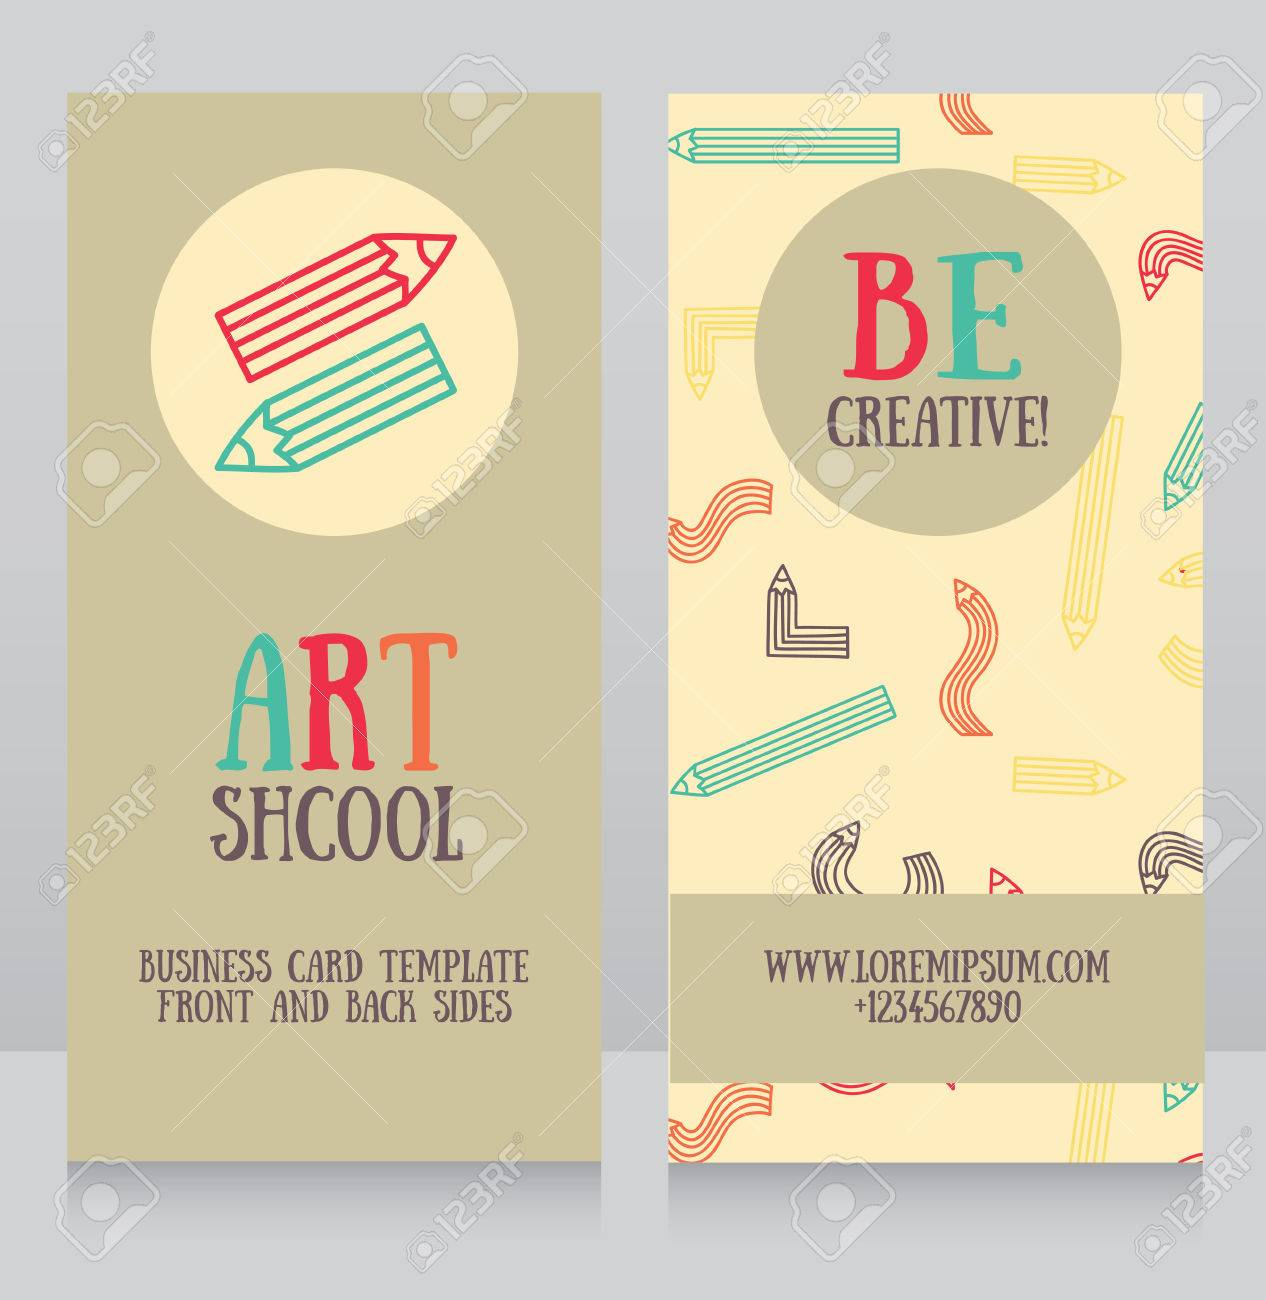 Business Cards Templates For Art School Can Be Used Therapy Or As Invitation